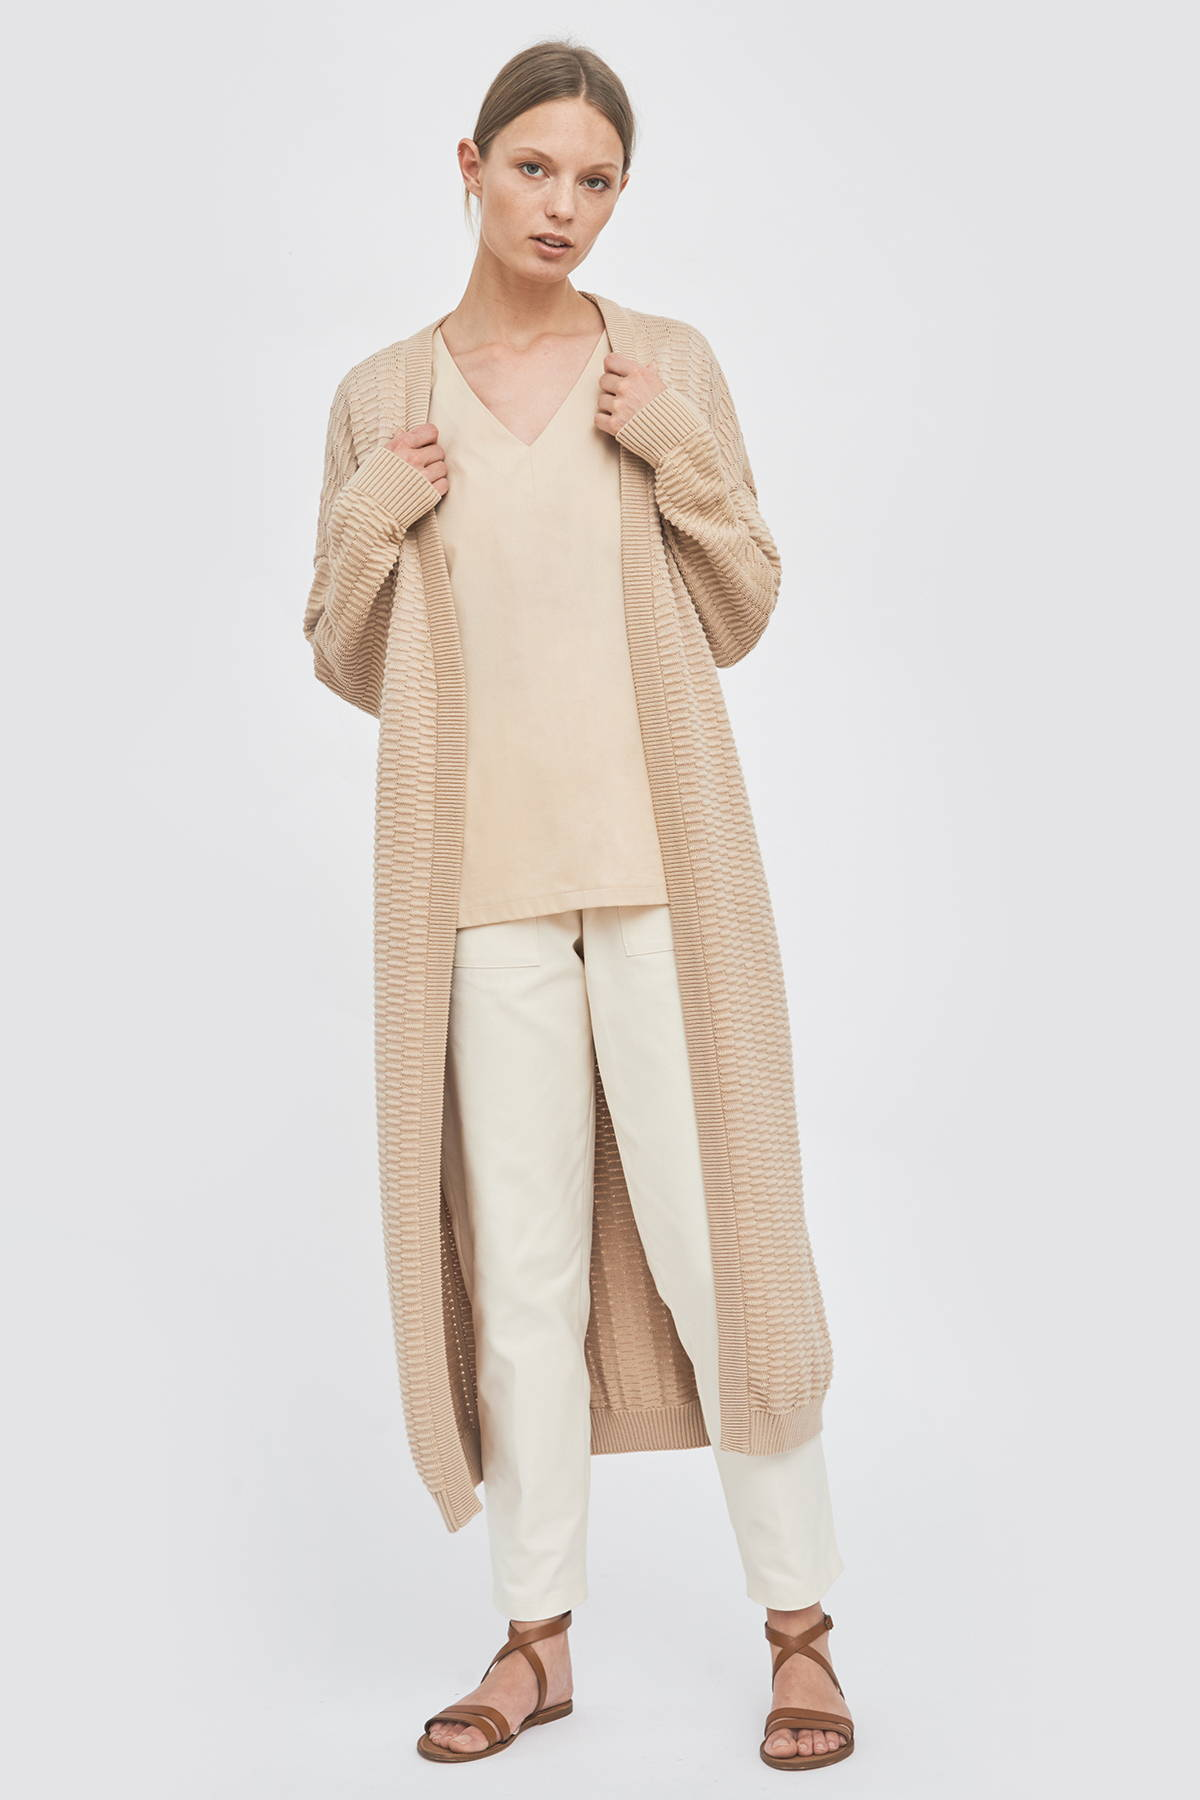 Sustainable organic-cotton knitwear summer knitted cardigan